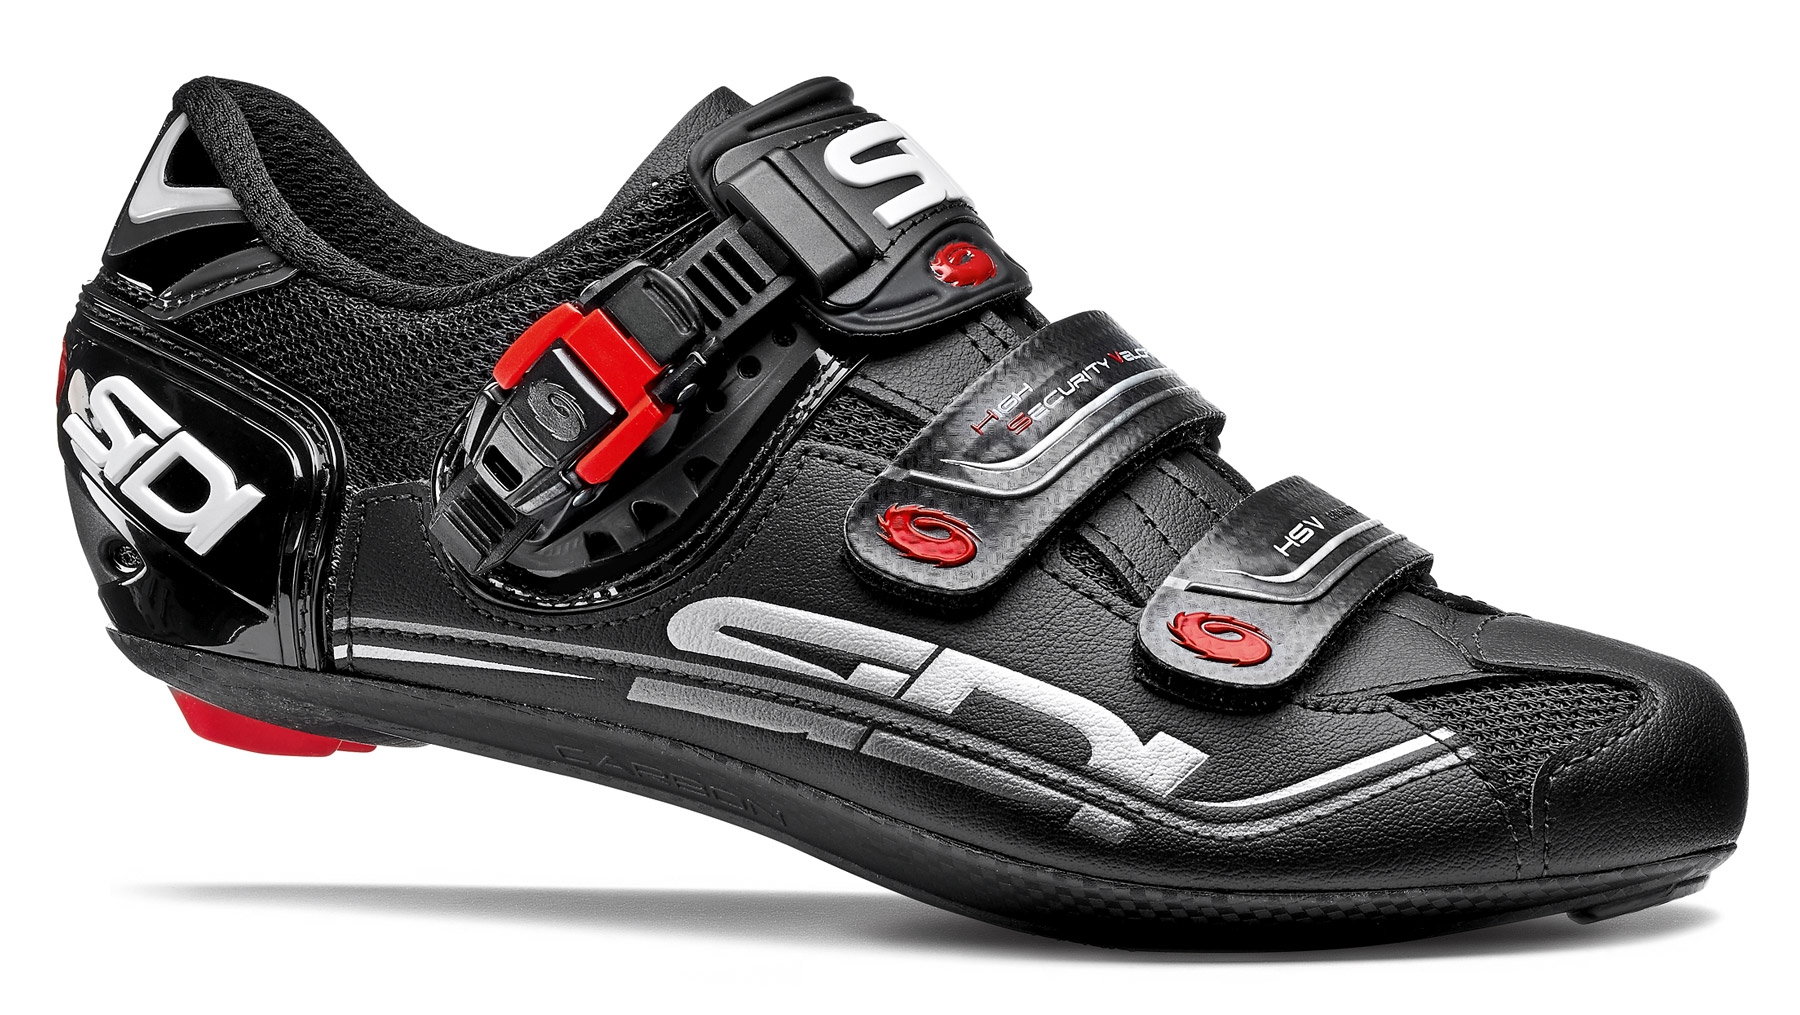 Sidi Genius 7 Road Cycling Shoes